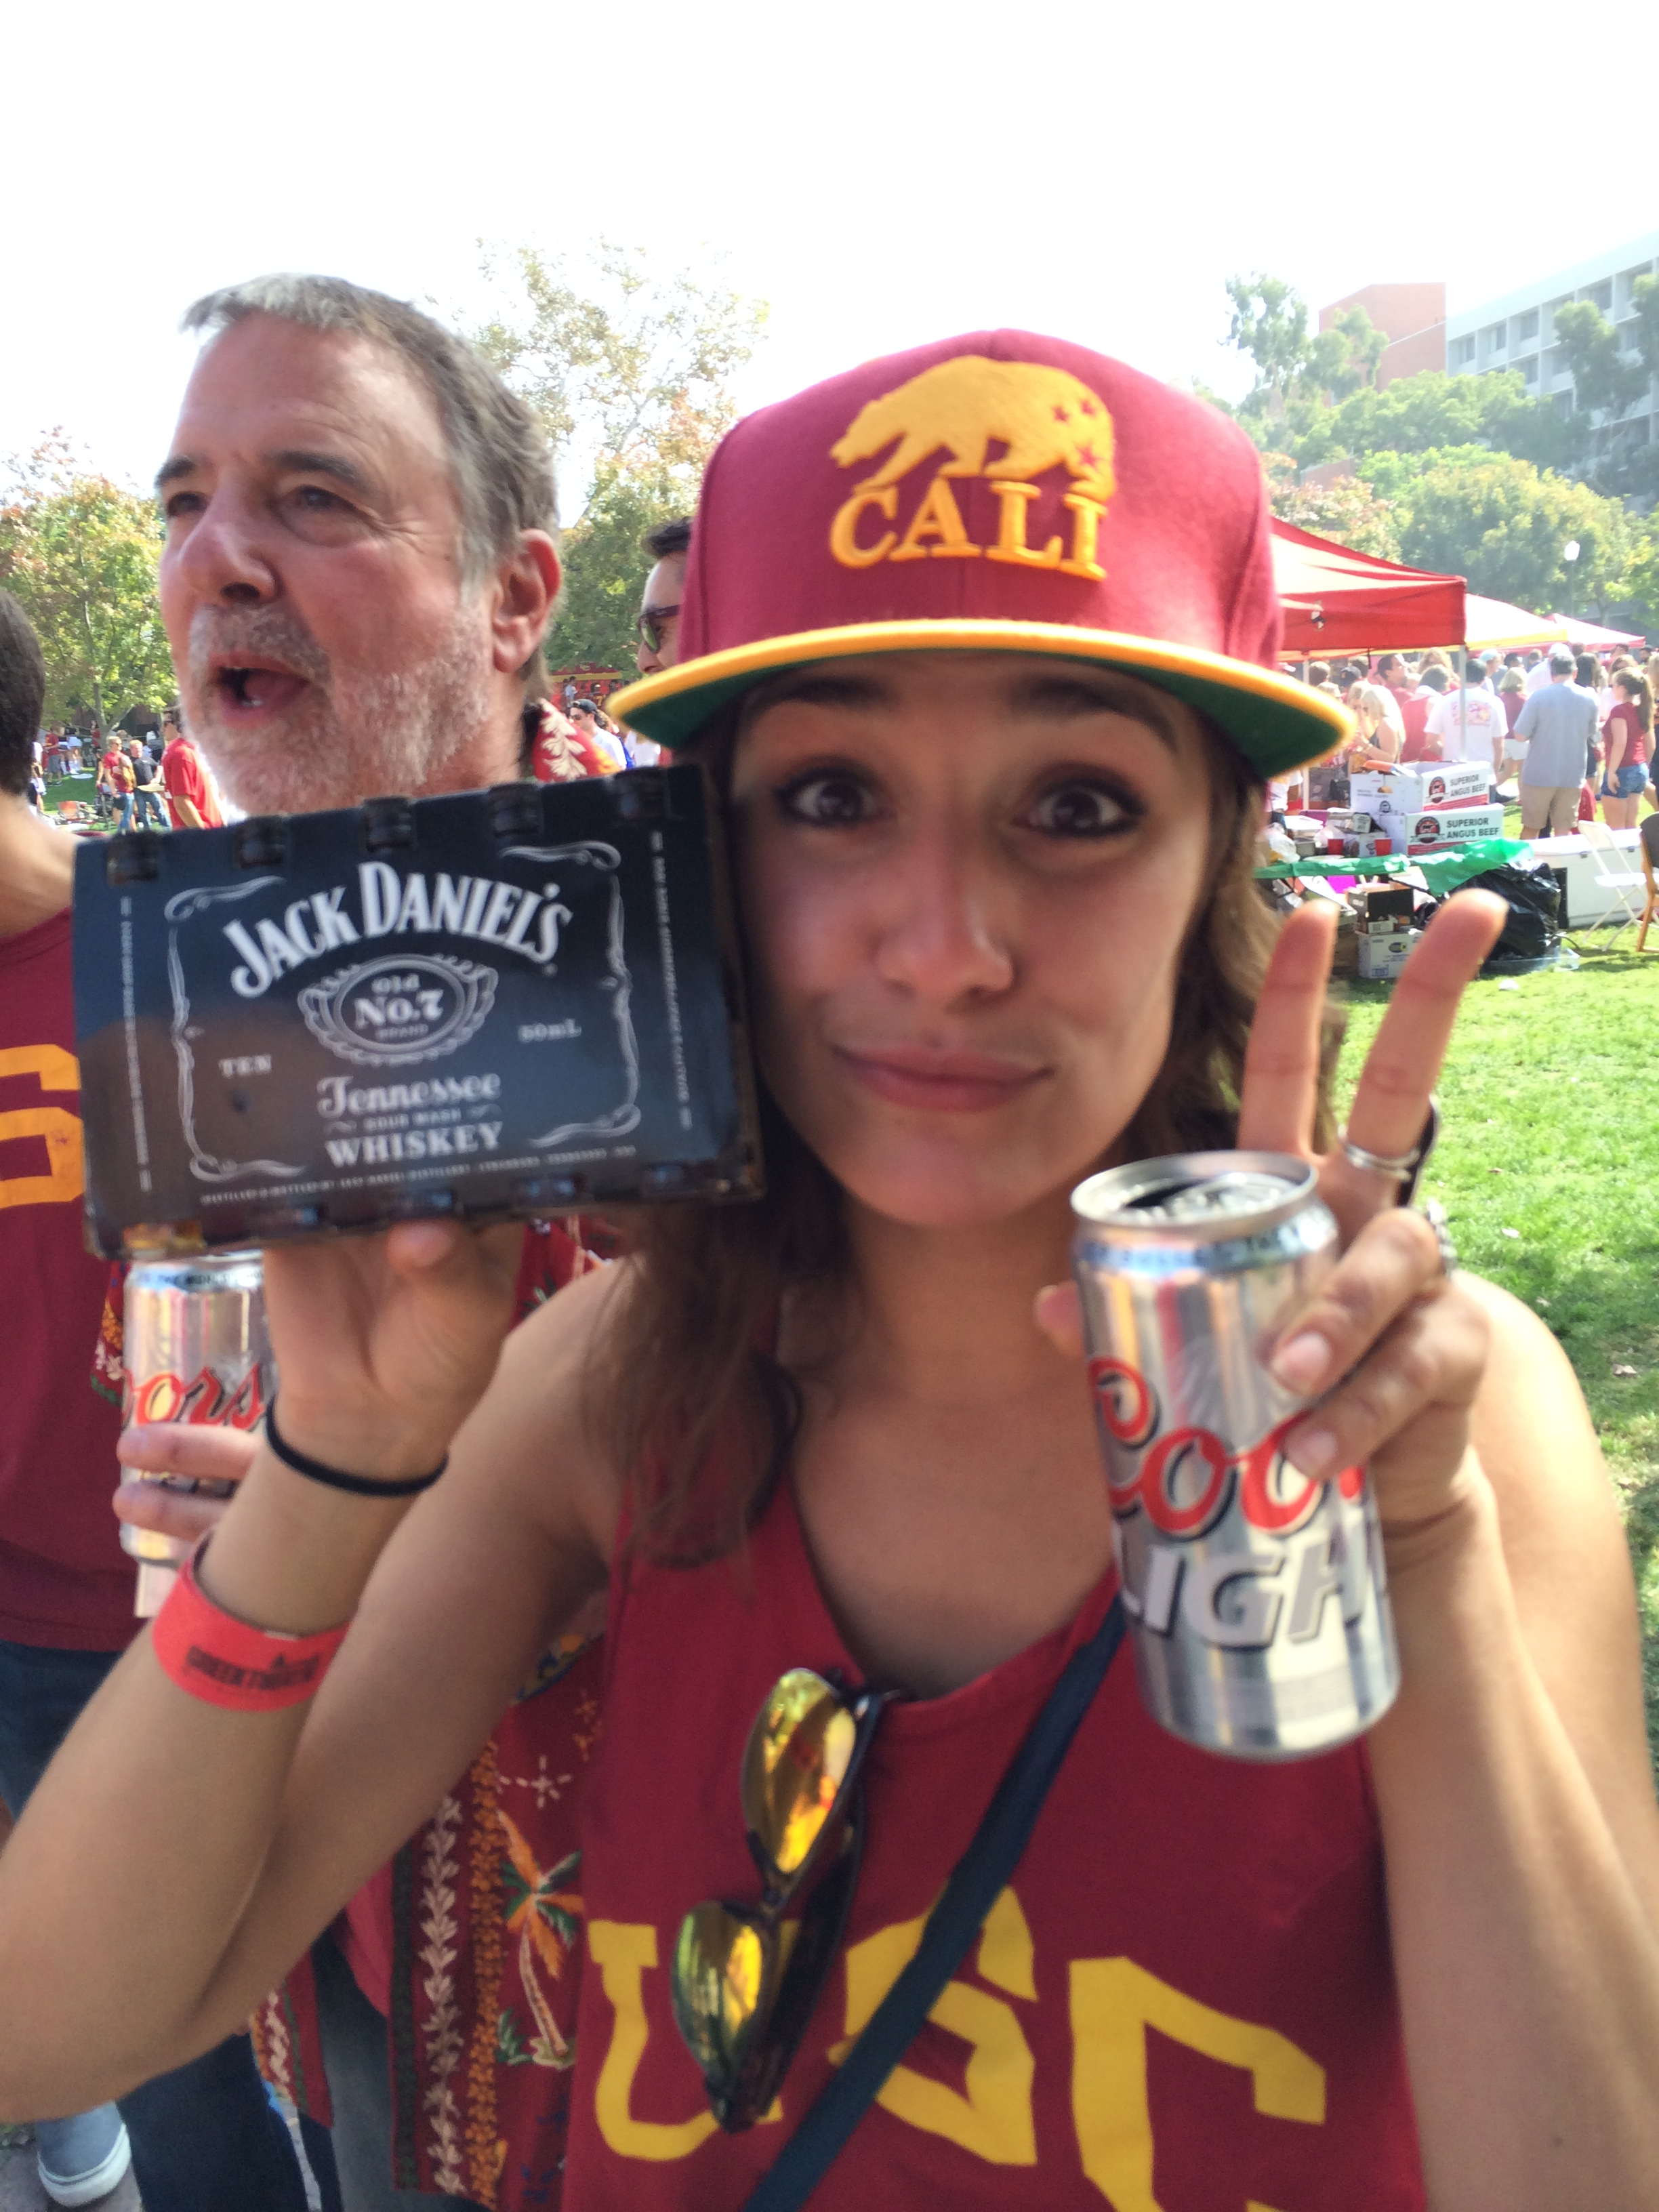 This is what a USC tailgate looks like.